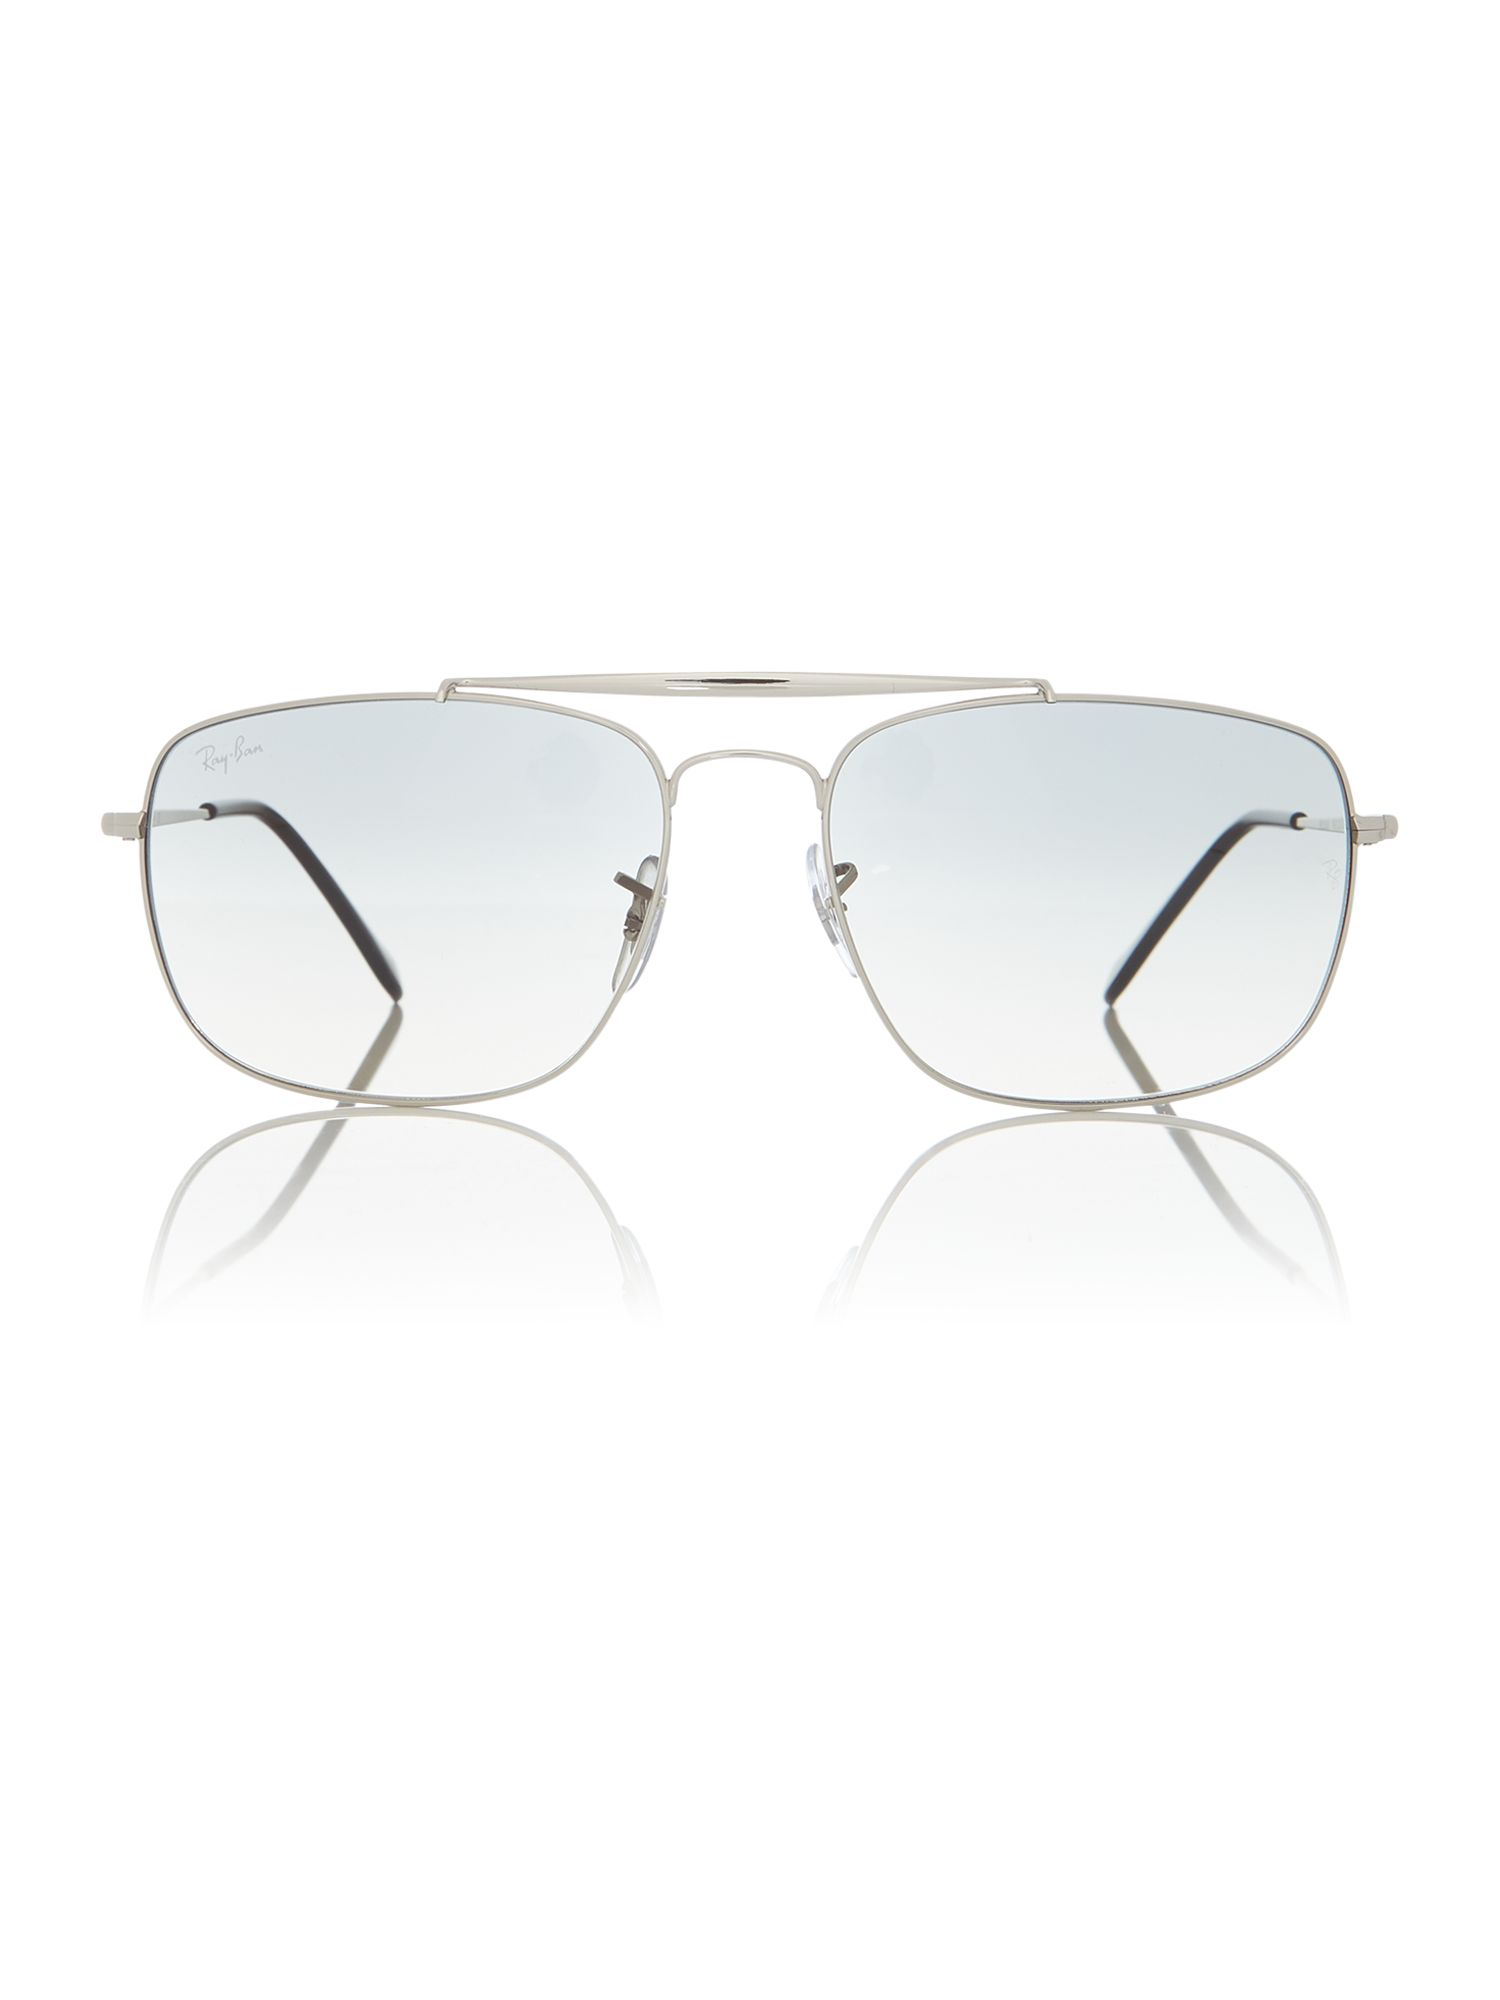 men s ray ban sunglasses buy men s ray bans house of fraser RB2132 New Wayfarer ray ban silver oo9411 square sunglasses